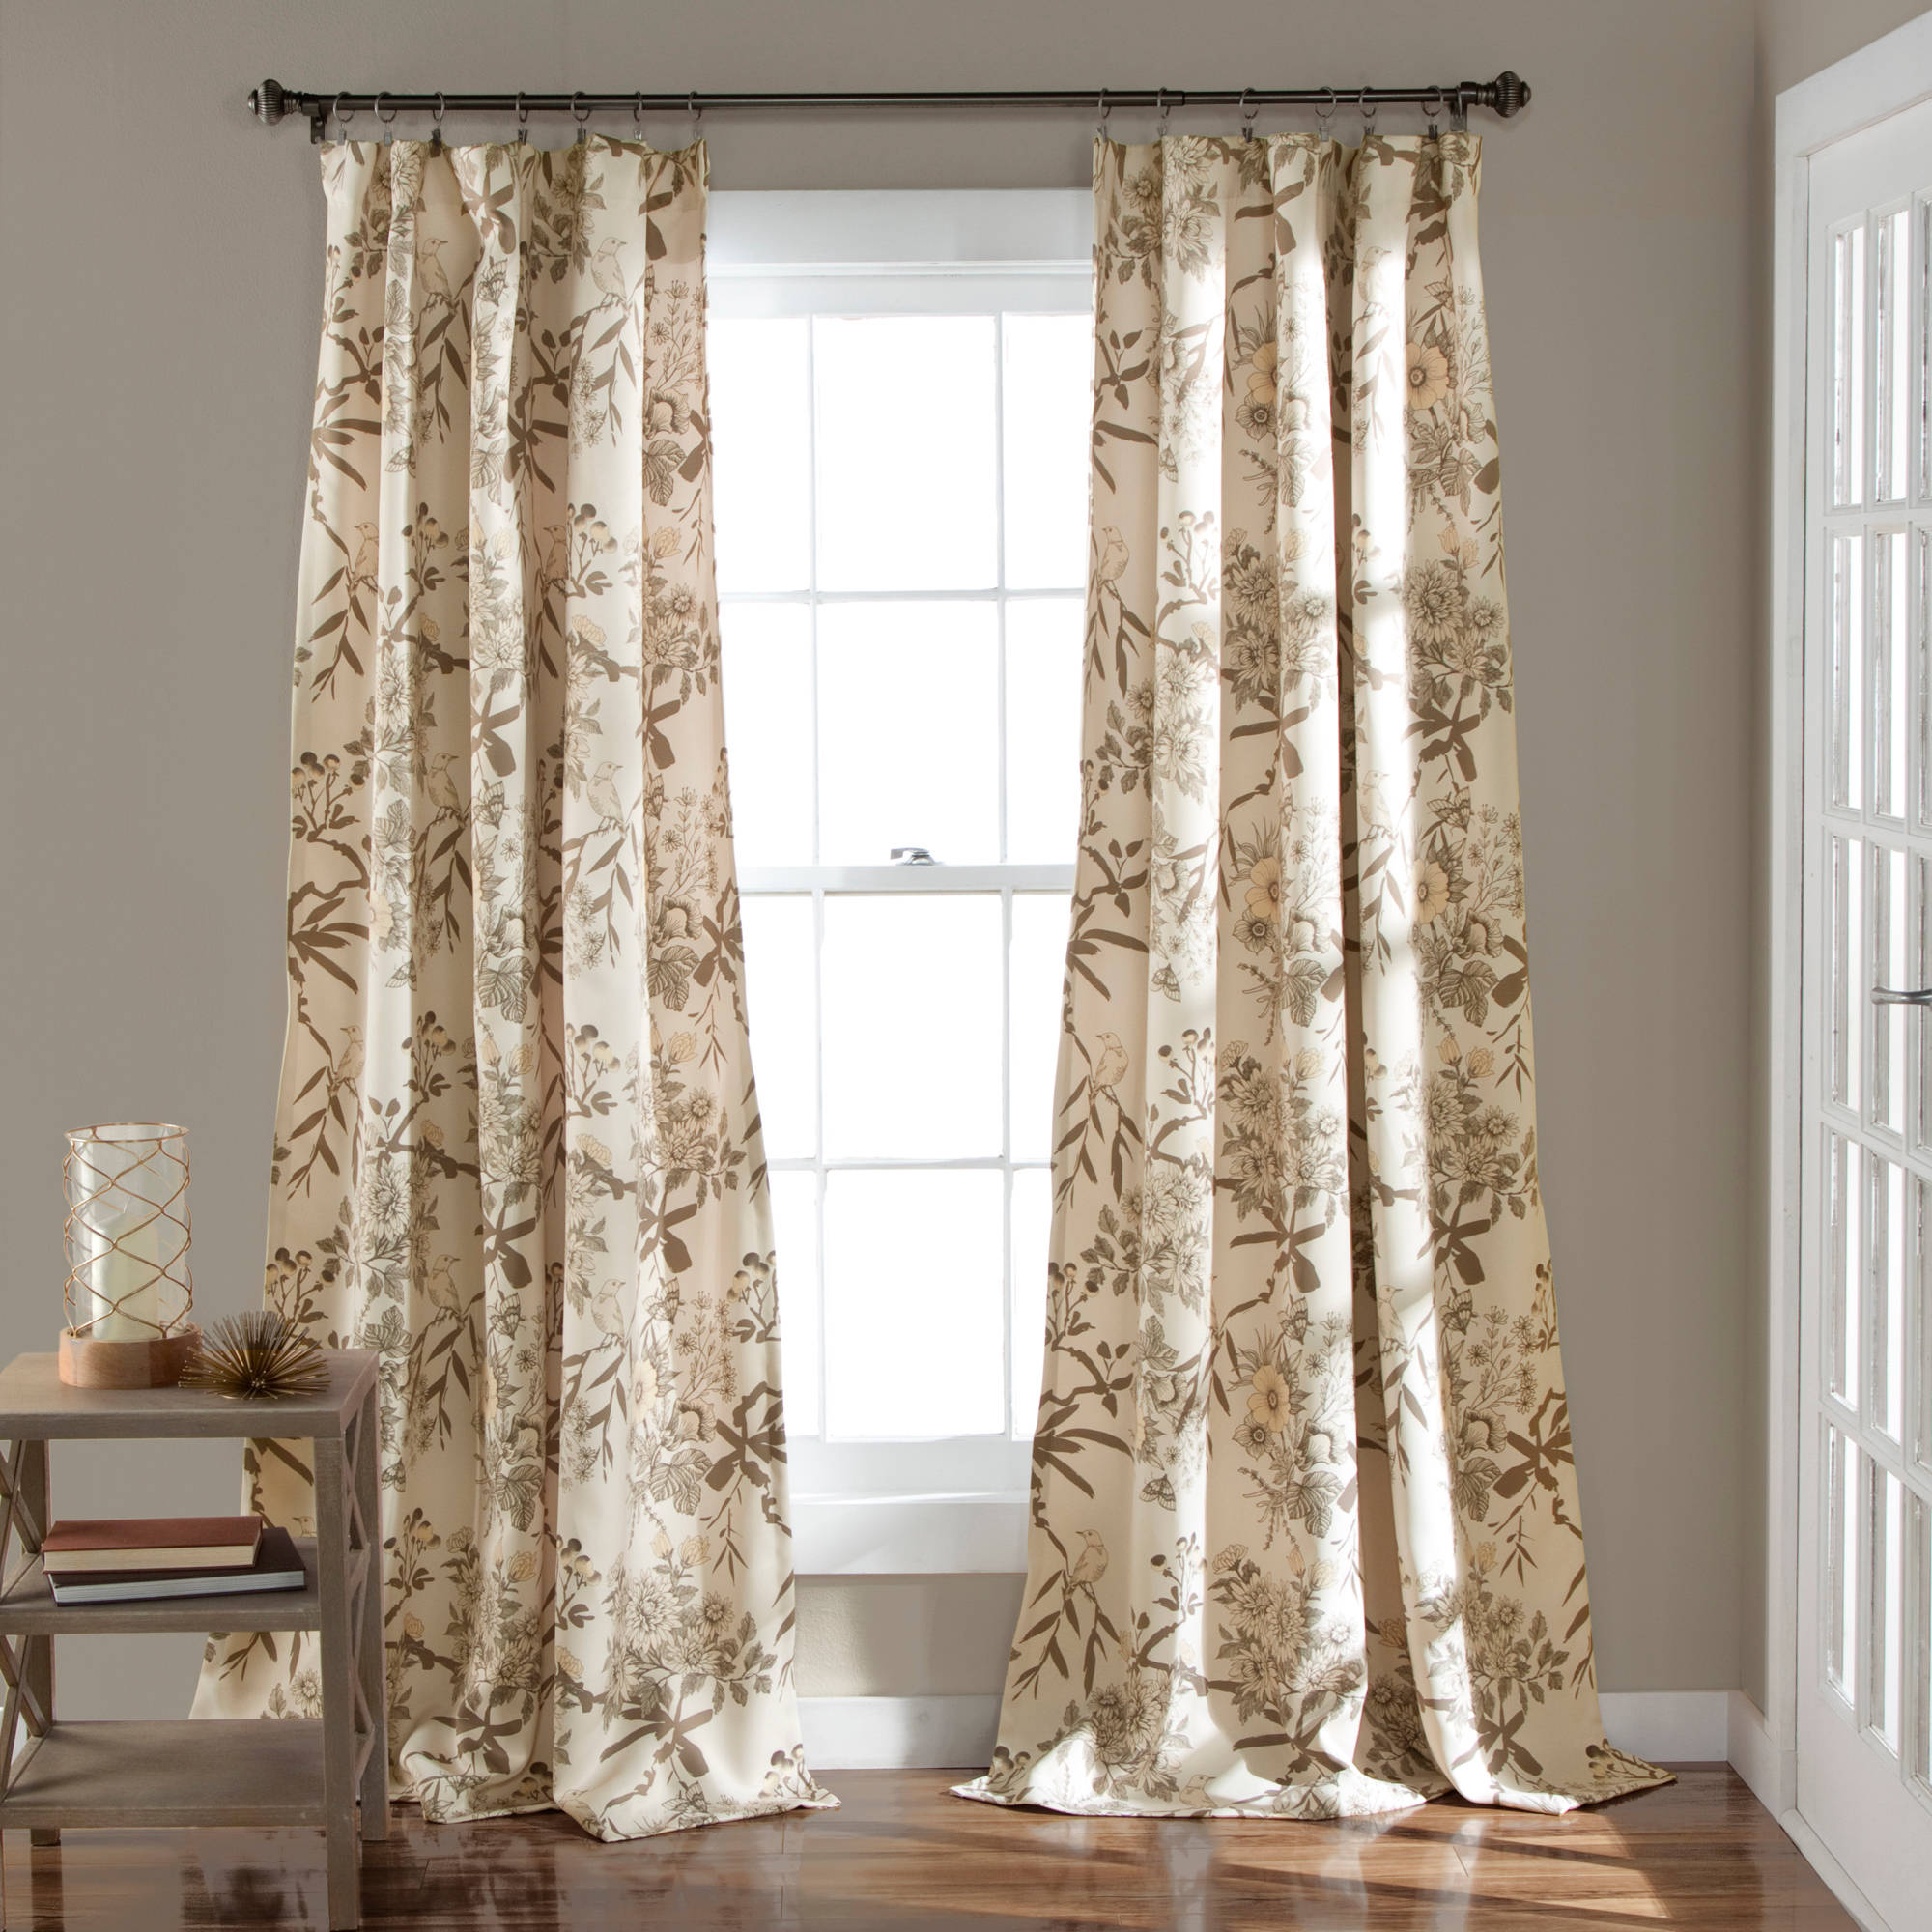 Lush Decor Lake Como Curtains Thermal Curtains Kohls Dress Up Your Kitchen Window With This